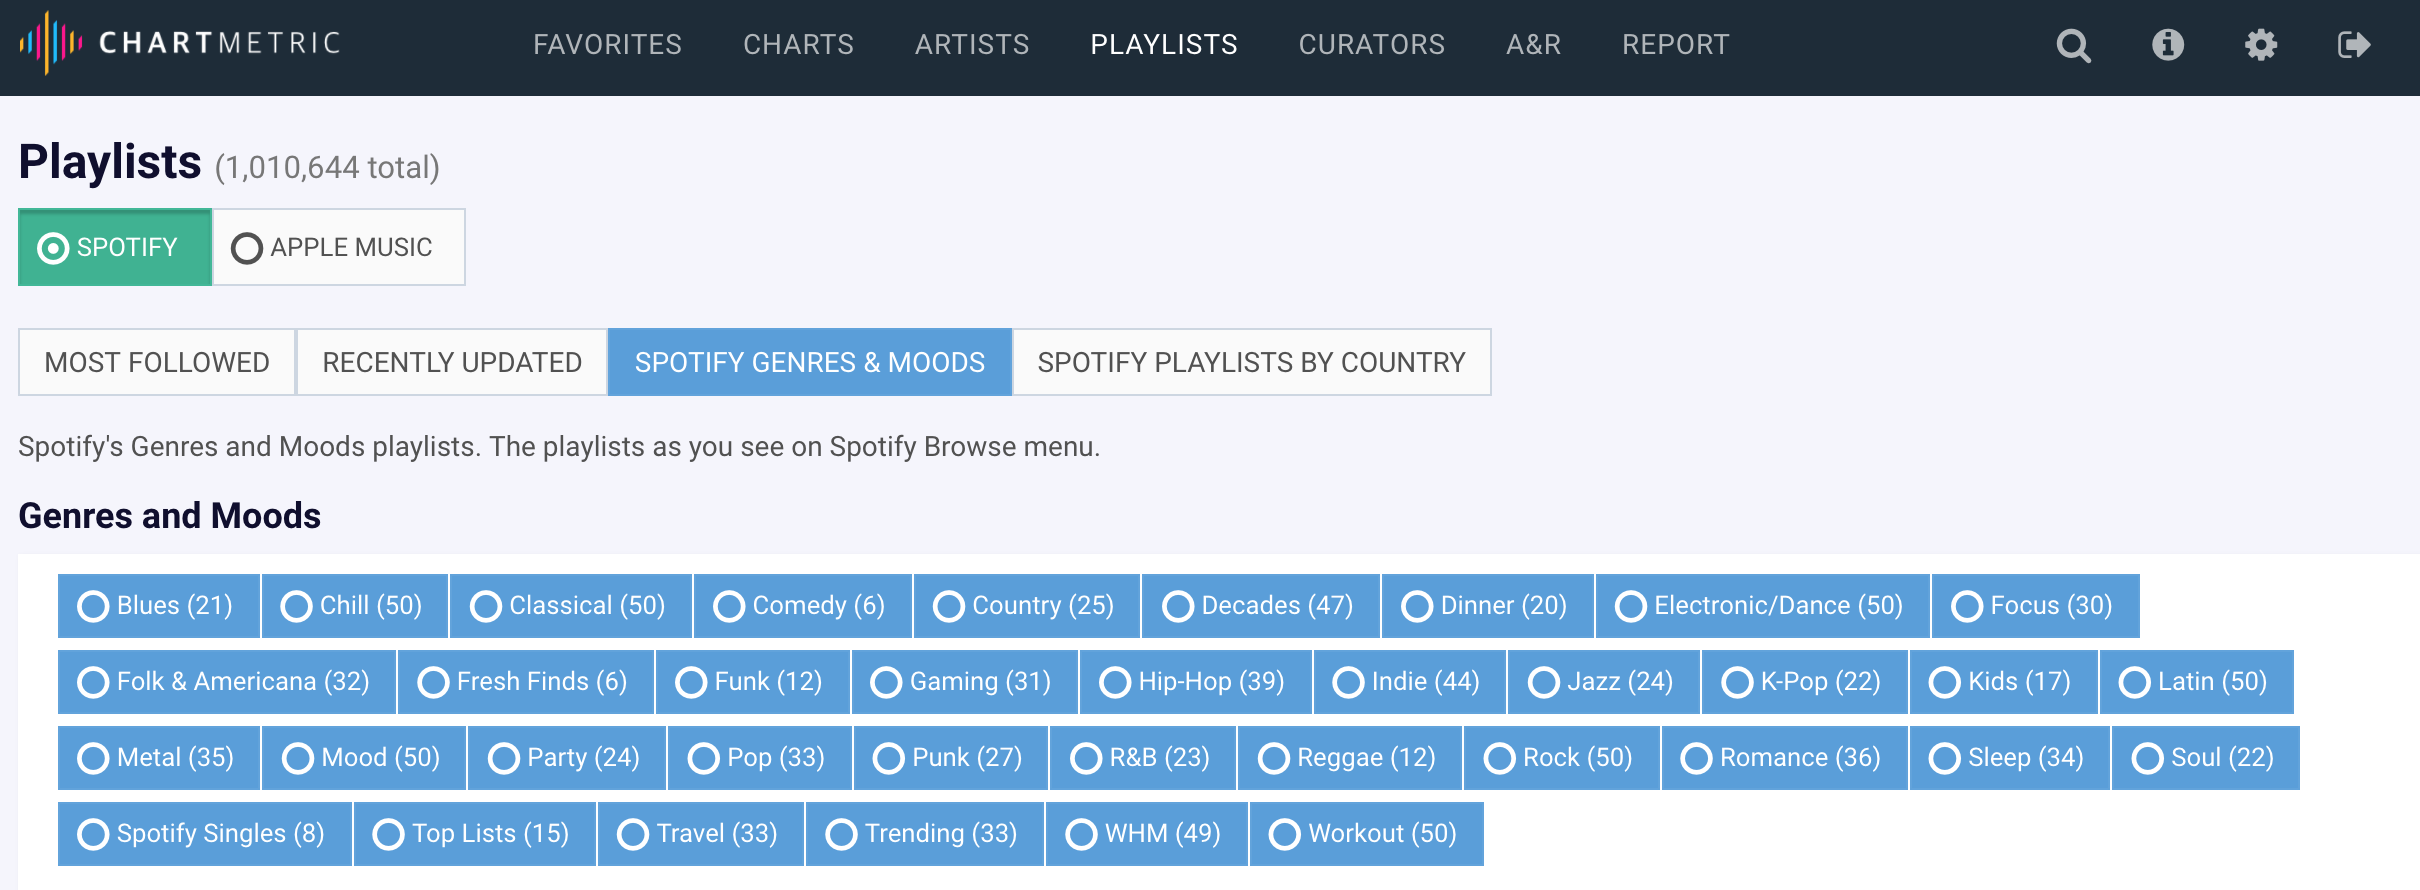 Spotify: The Rise of the Contextual Playlist - chartmetric